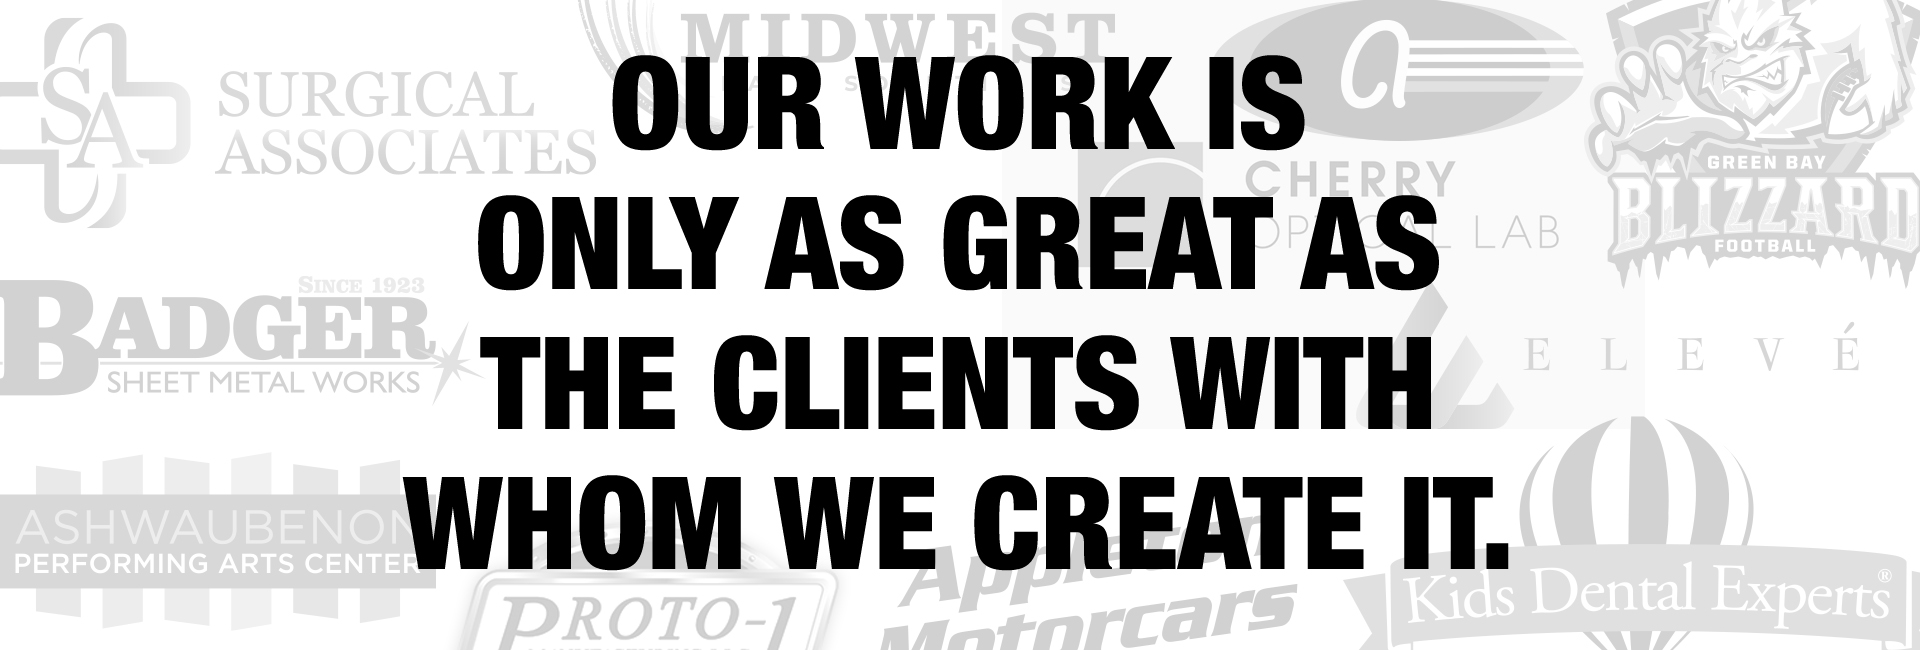 Our work is only as great as the clients we create it with